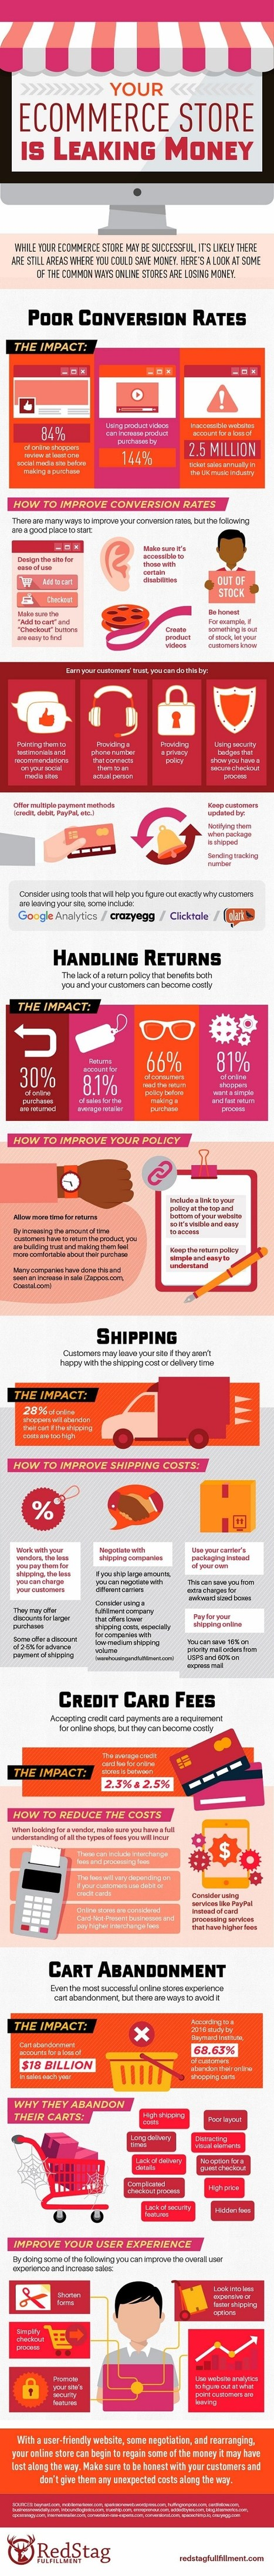 How Your Online Store May Be Leaking Money #Infographic | MarketingHits | Scoop.it